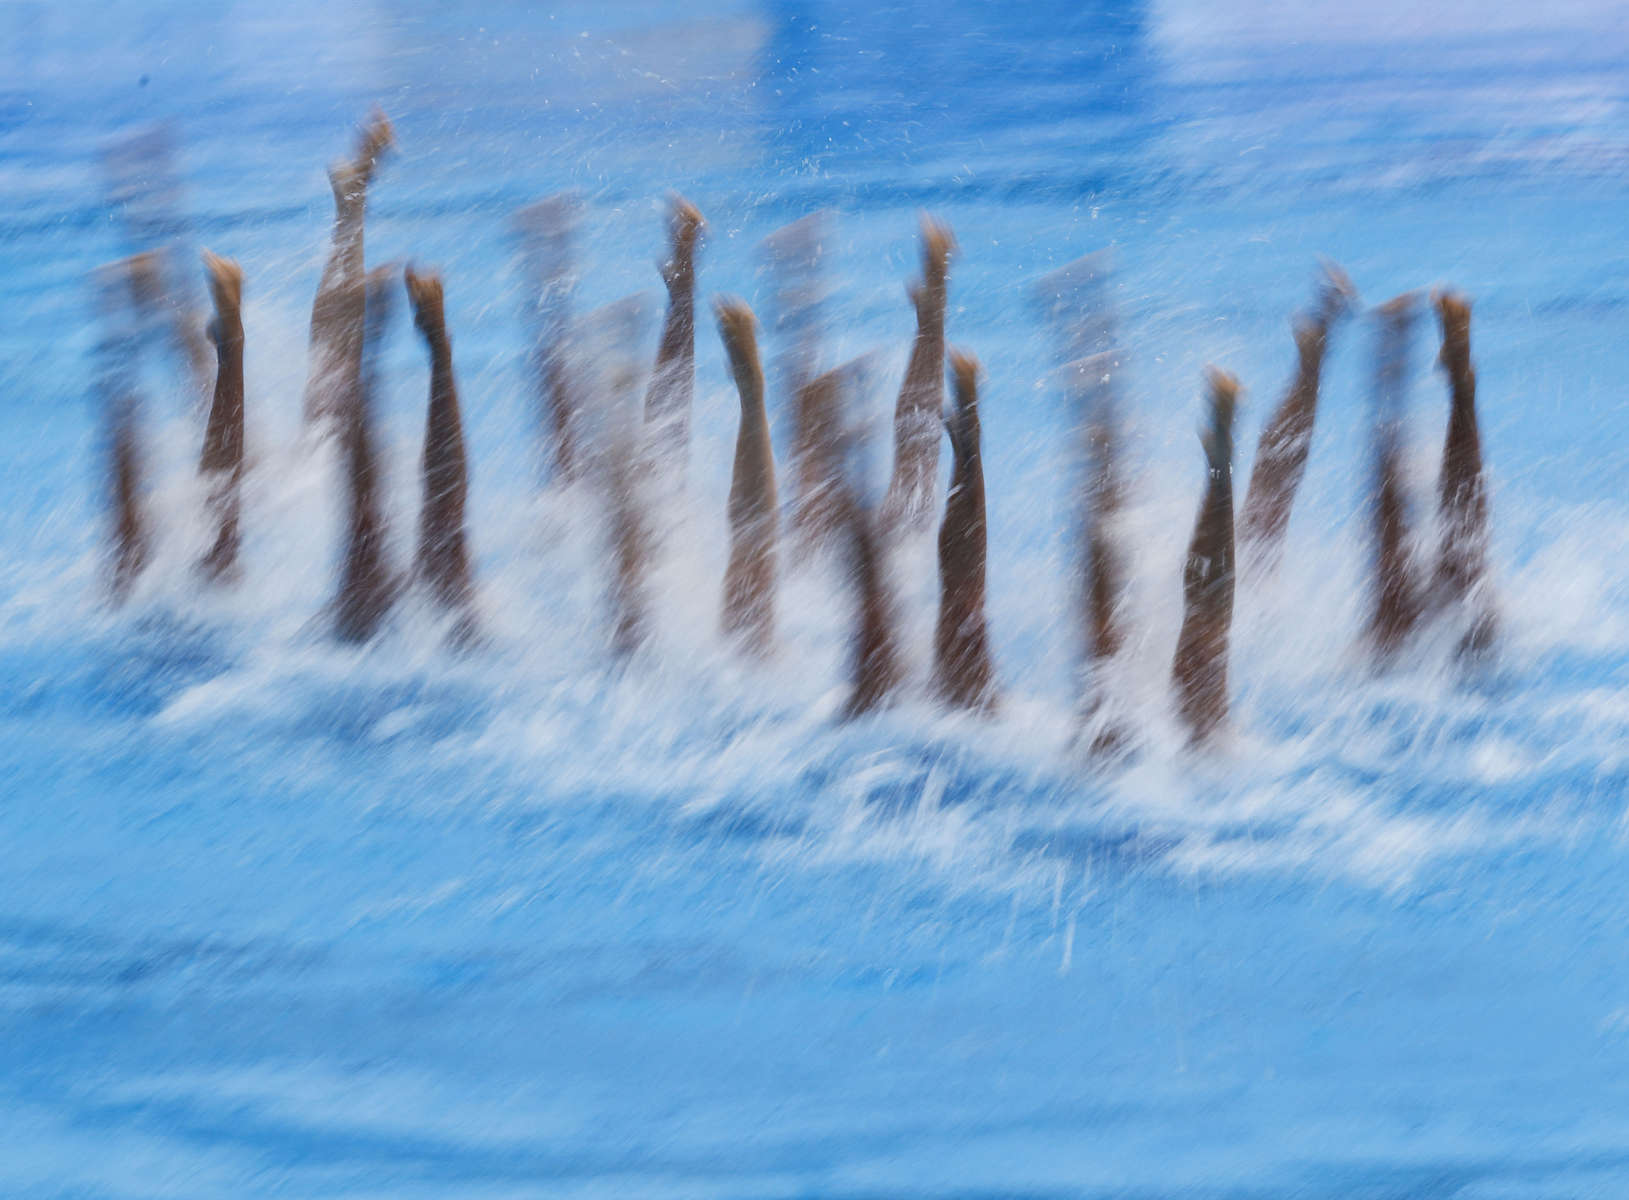 The Chinese team swims for the Synchronised Swimming Combination Free finals, during the FINA World championships in Budapest, Hungary on July 22, 2017. Taking advantage of the fact that the Russian team did not entered this event, the Chinese team won its first Synchronized Swimming World Championship gold medal in this event.